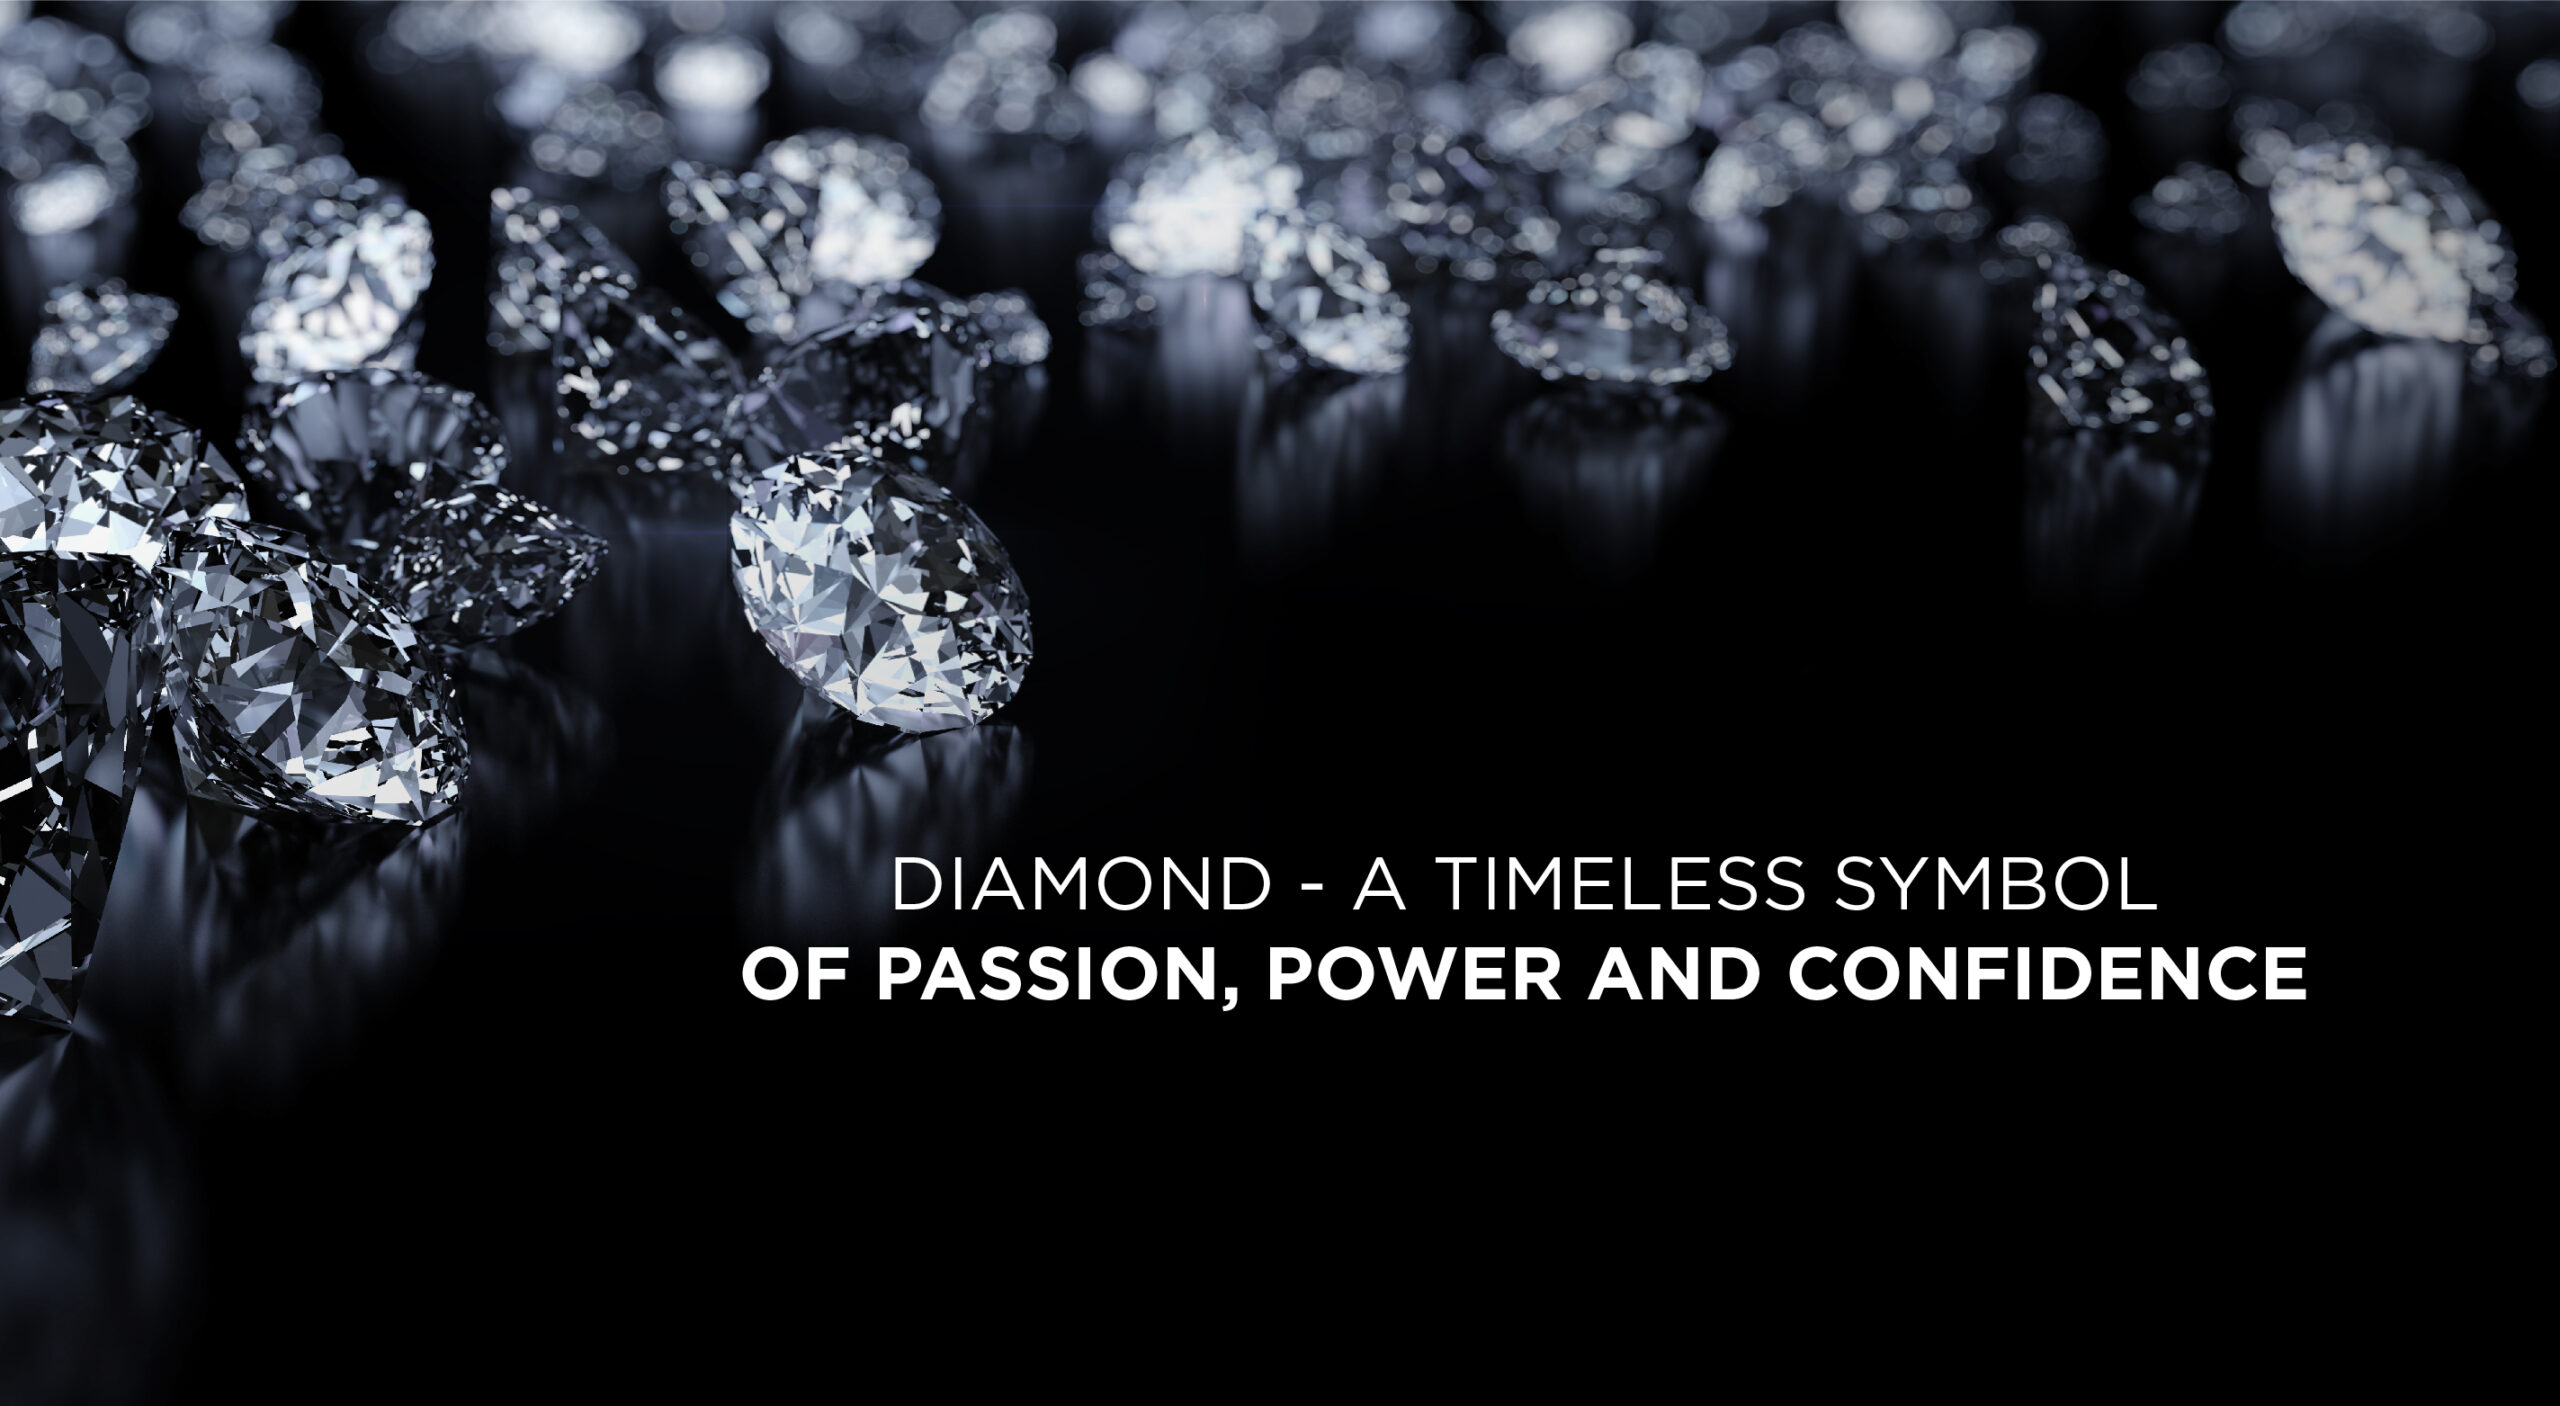 Diamond – A Timeless Symbol of Passion, Power and Confidence